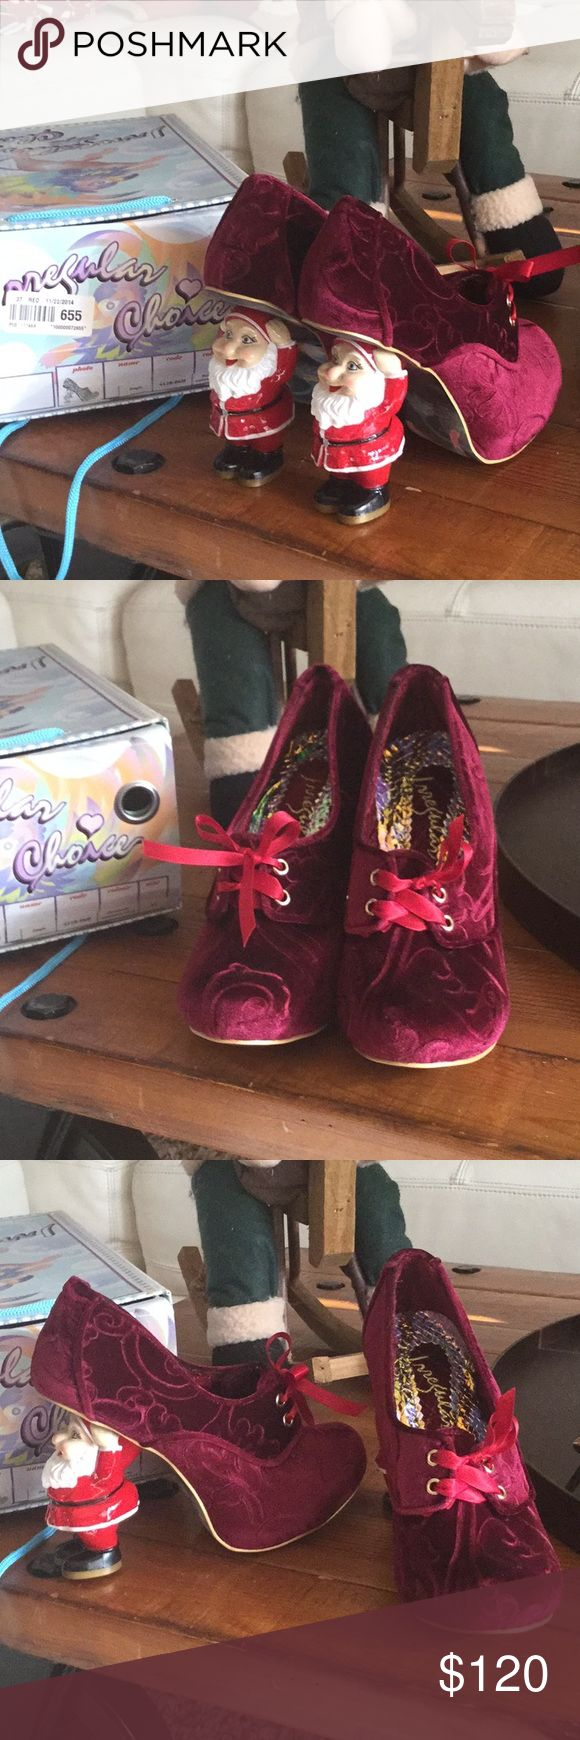 Irregular choice santa jingle Very good condition used only once, perfect for the holidays. Hard to find Europe size 37 Usa 6.5 color is burgundy irregular choice Shoes